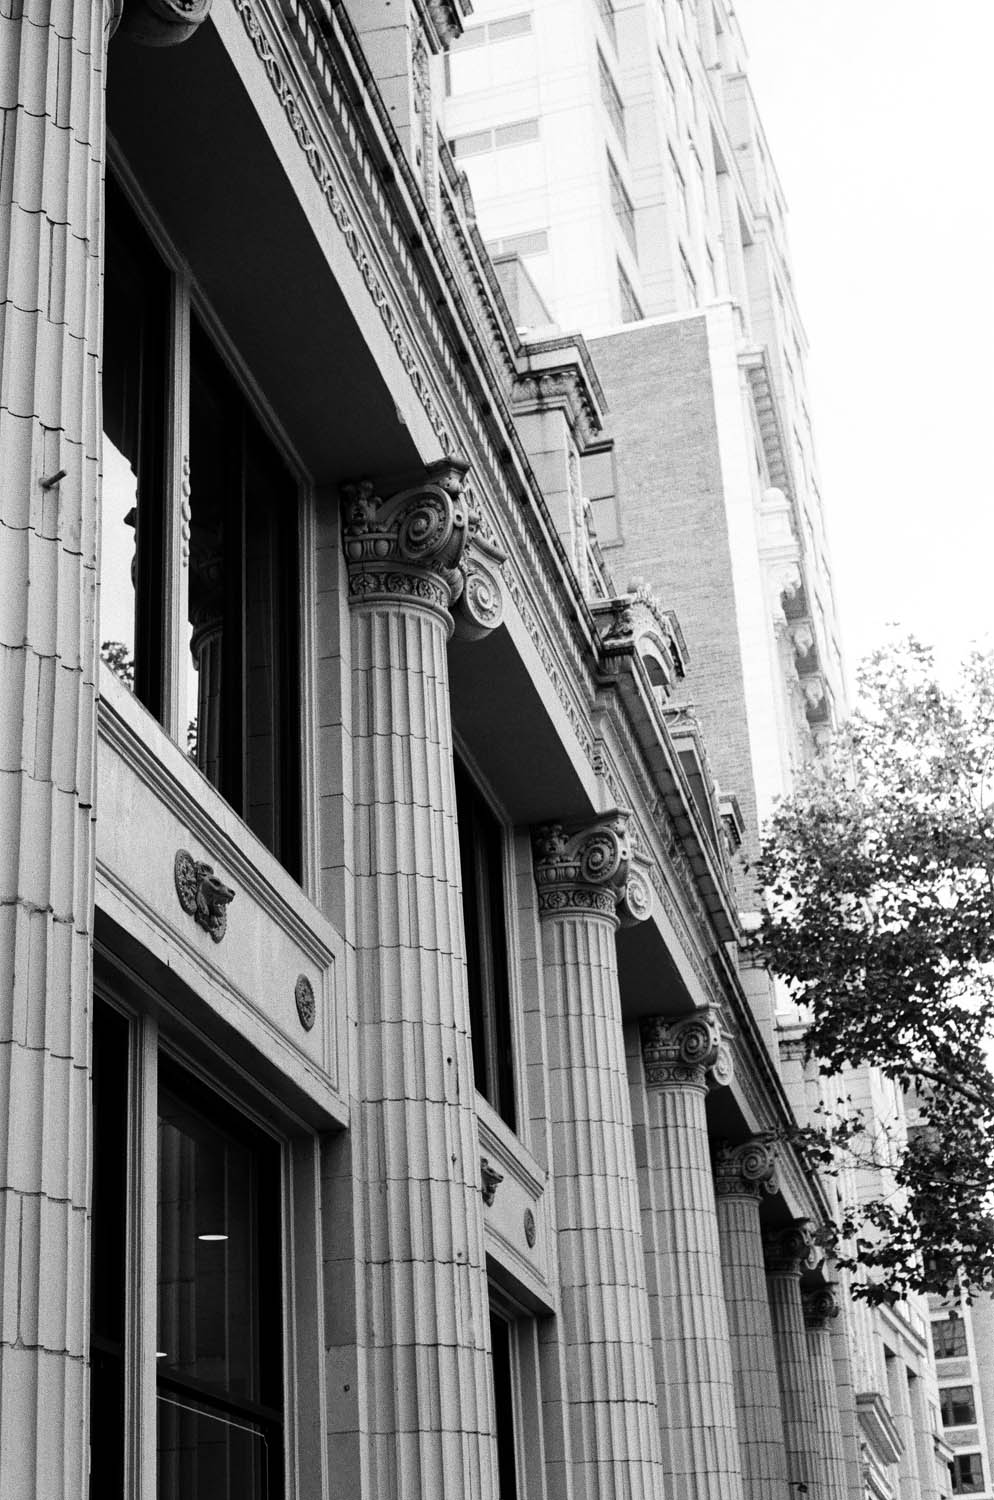 Downtown Norfolk, VA on Kodak Tri-X with Pentax K1000